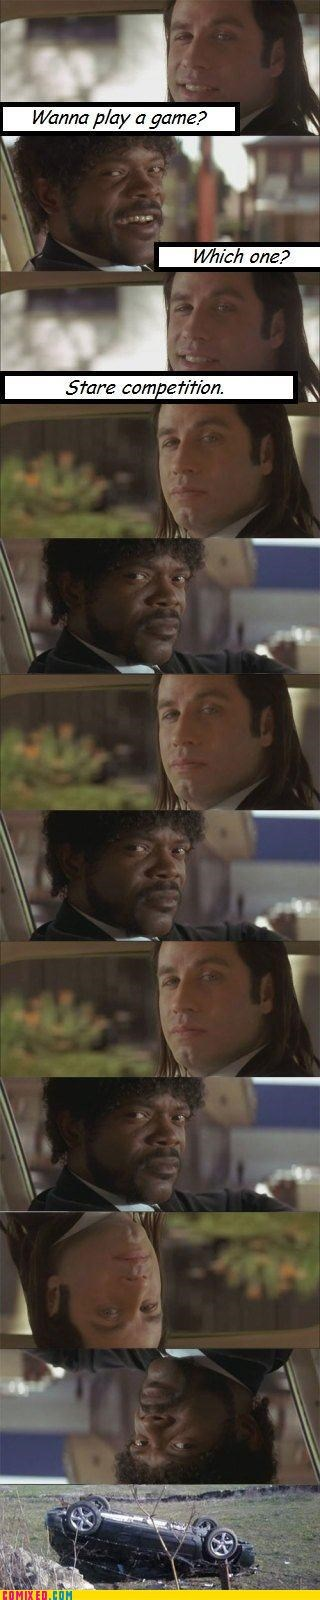 car accident From the Movies idiots john travolta pulp fiction Samuel L Jackson stare contest